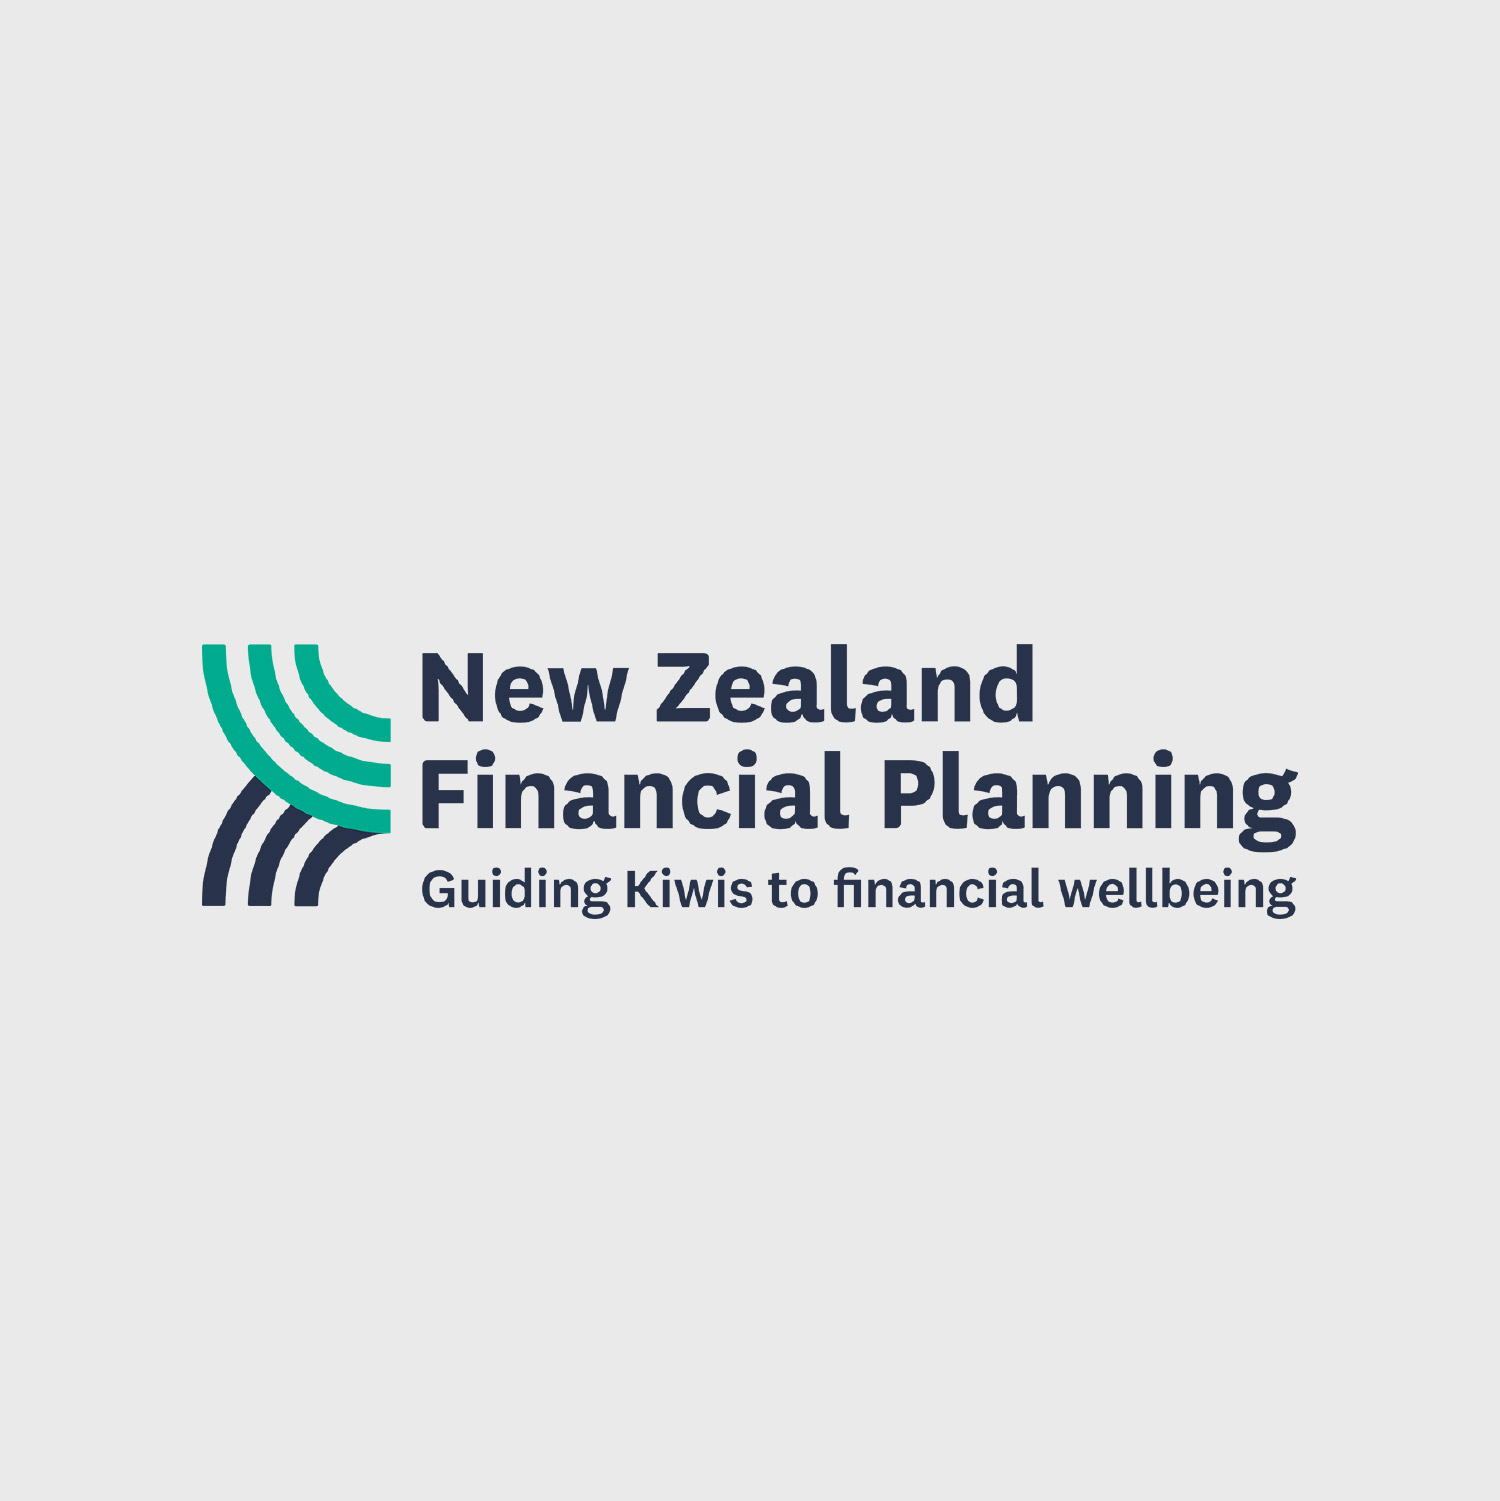 new zealand financial planning logo